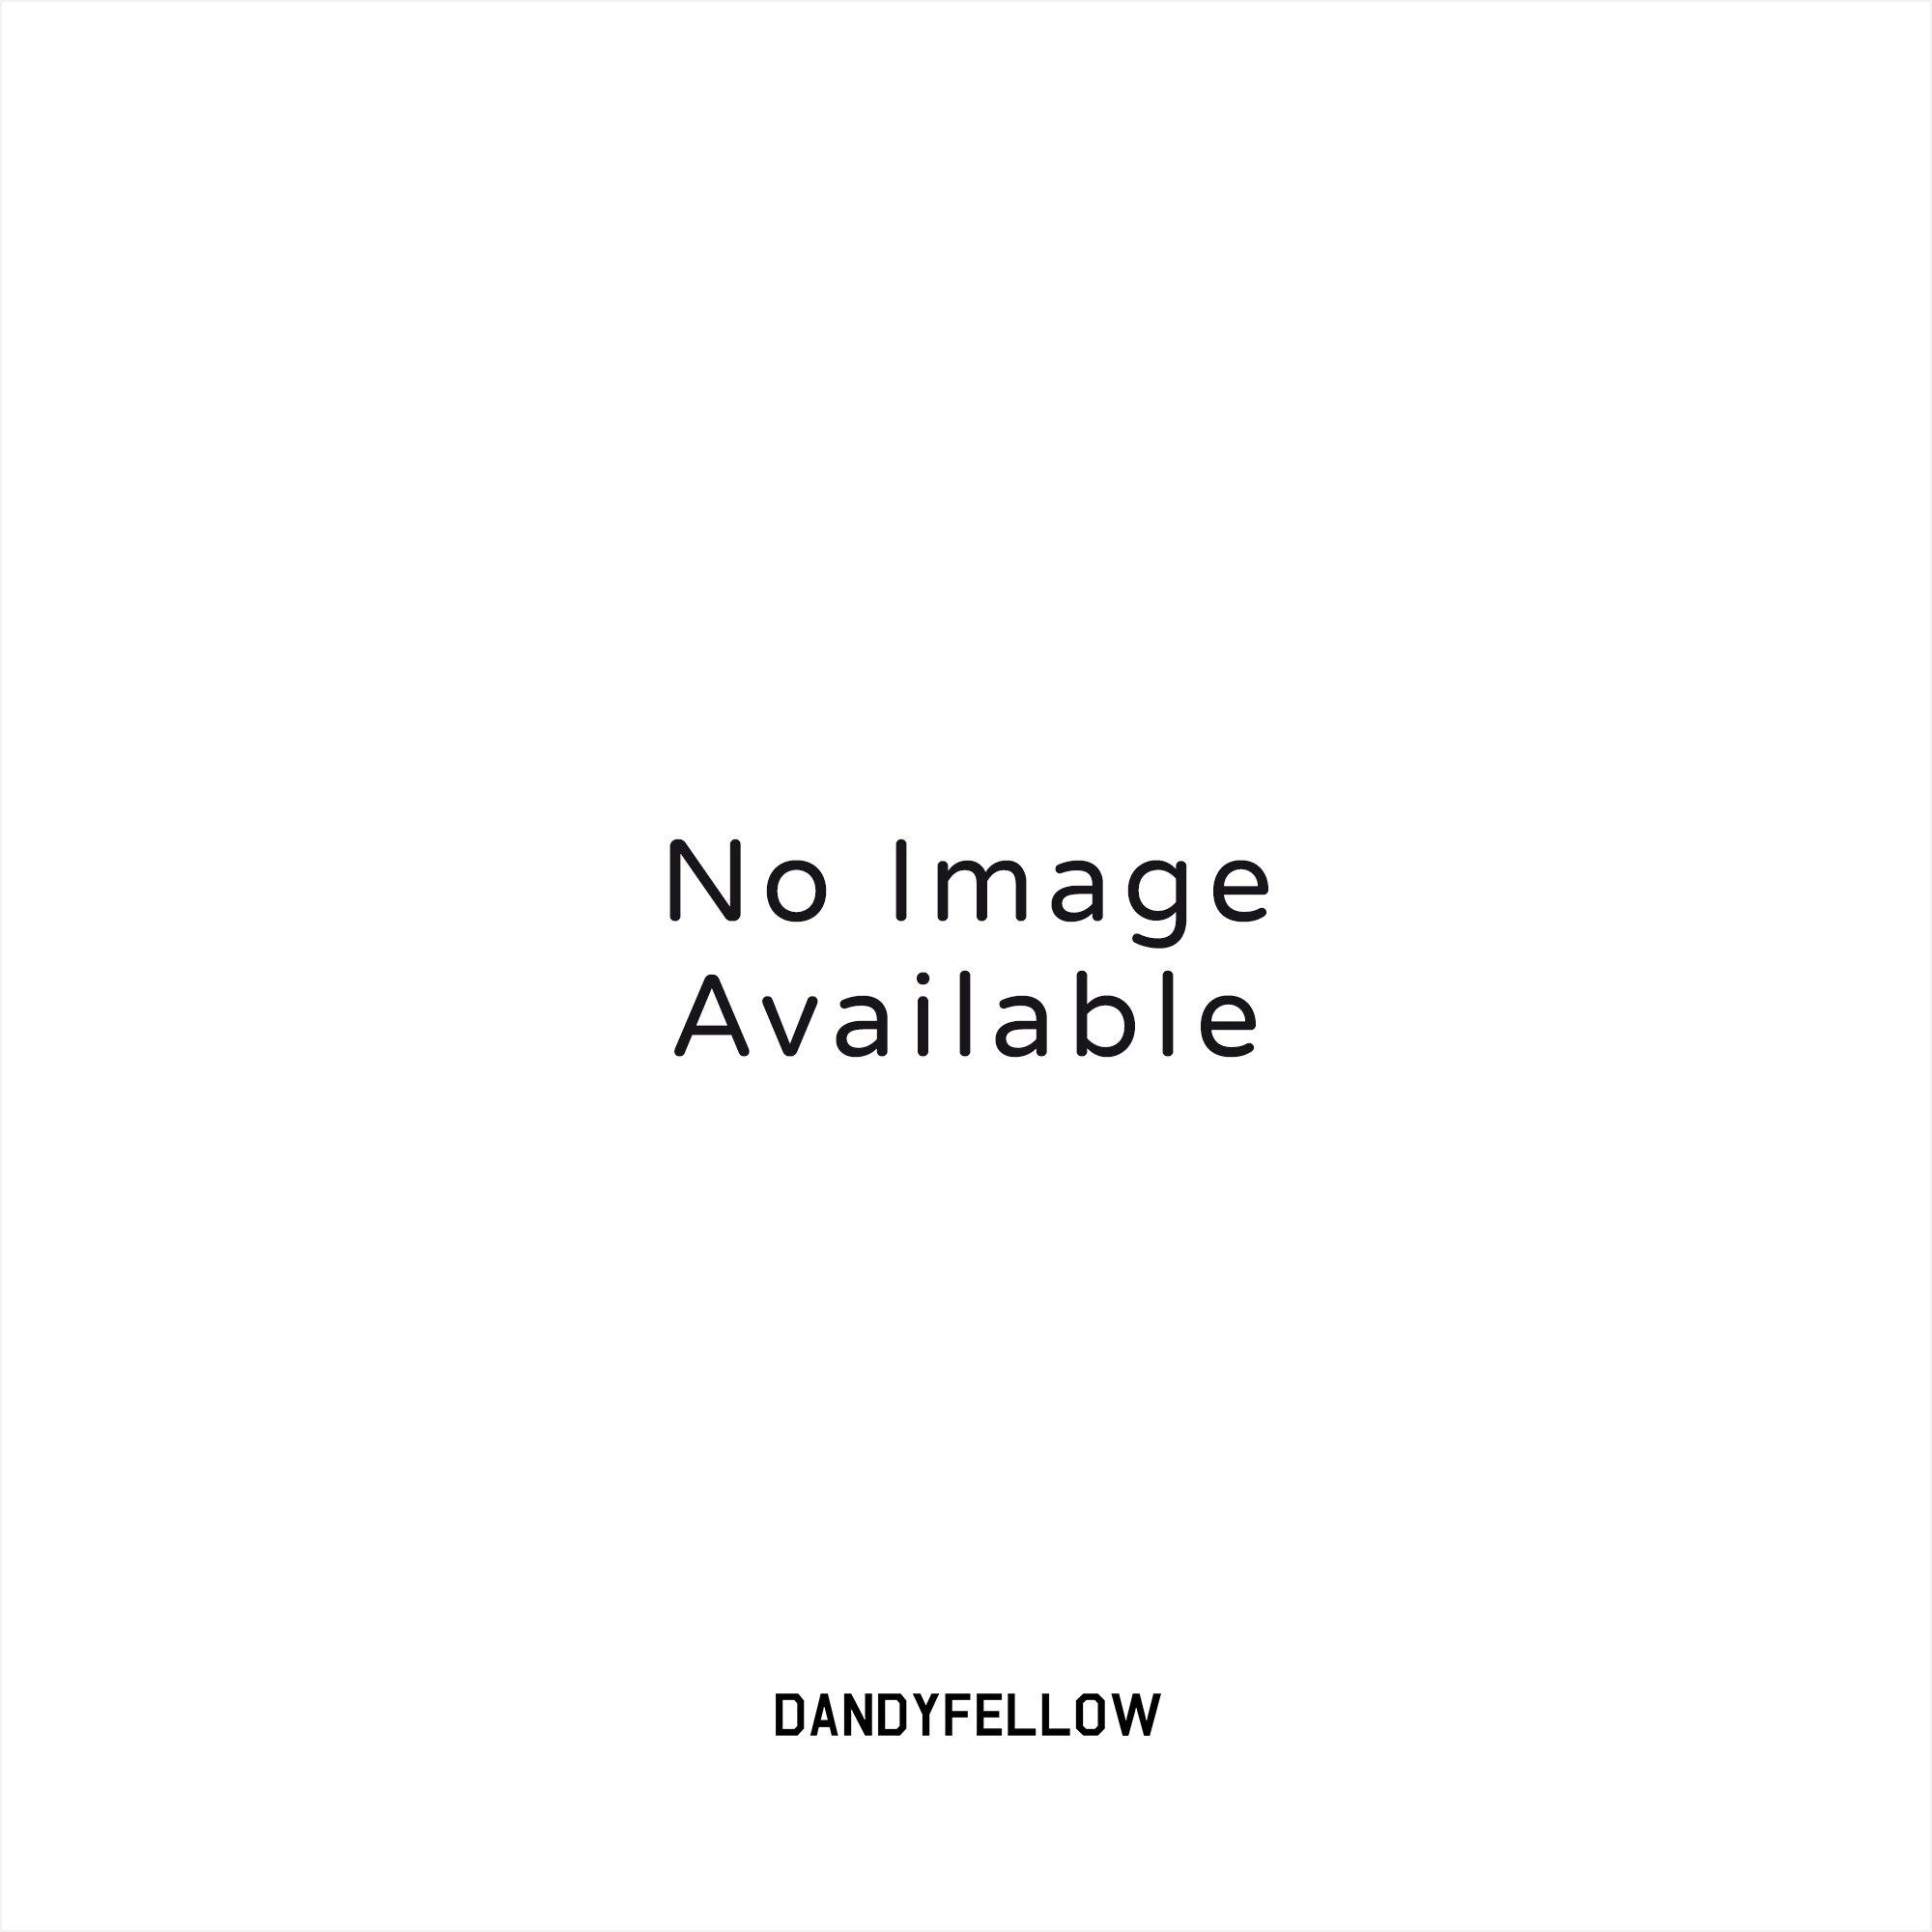 6d444bca0fa Adidas Y-3 Saikou (Black) at Dandy Fellow